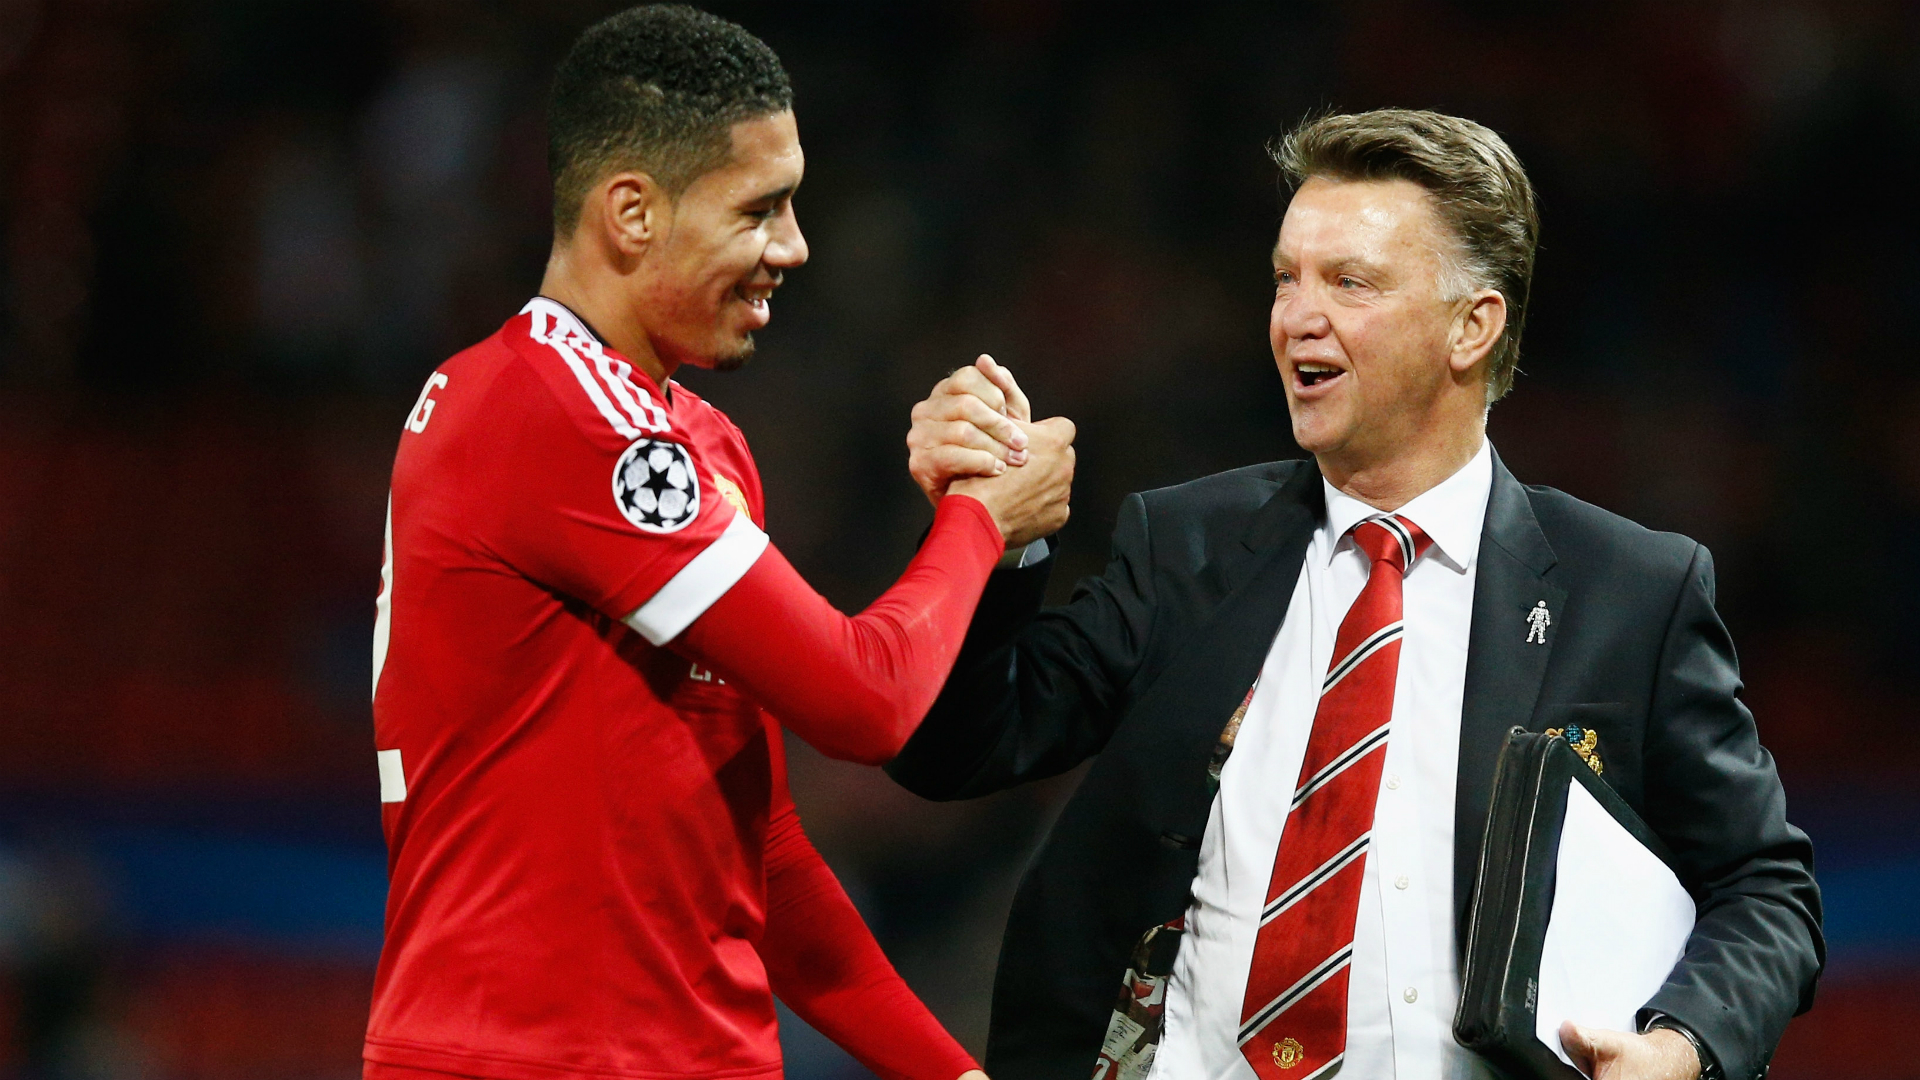 Chris Smalling Louis van Gaal Manchester United